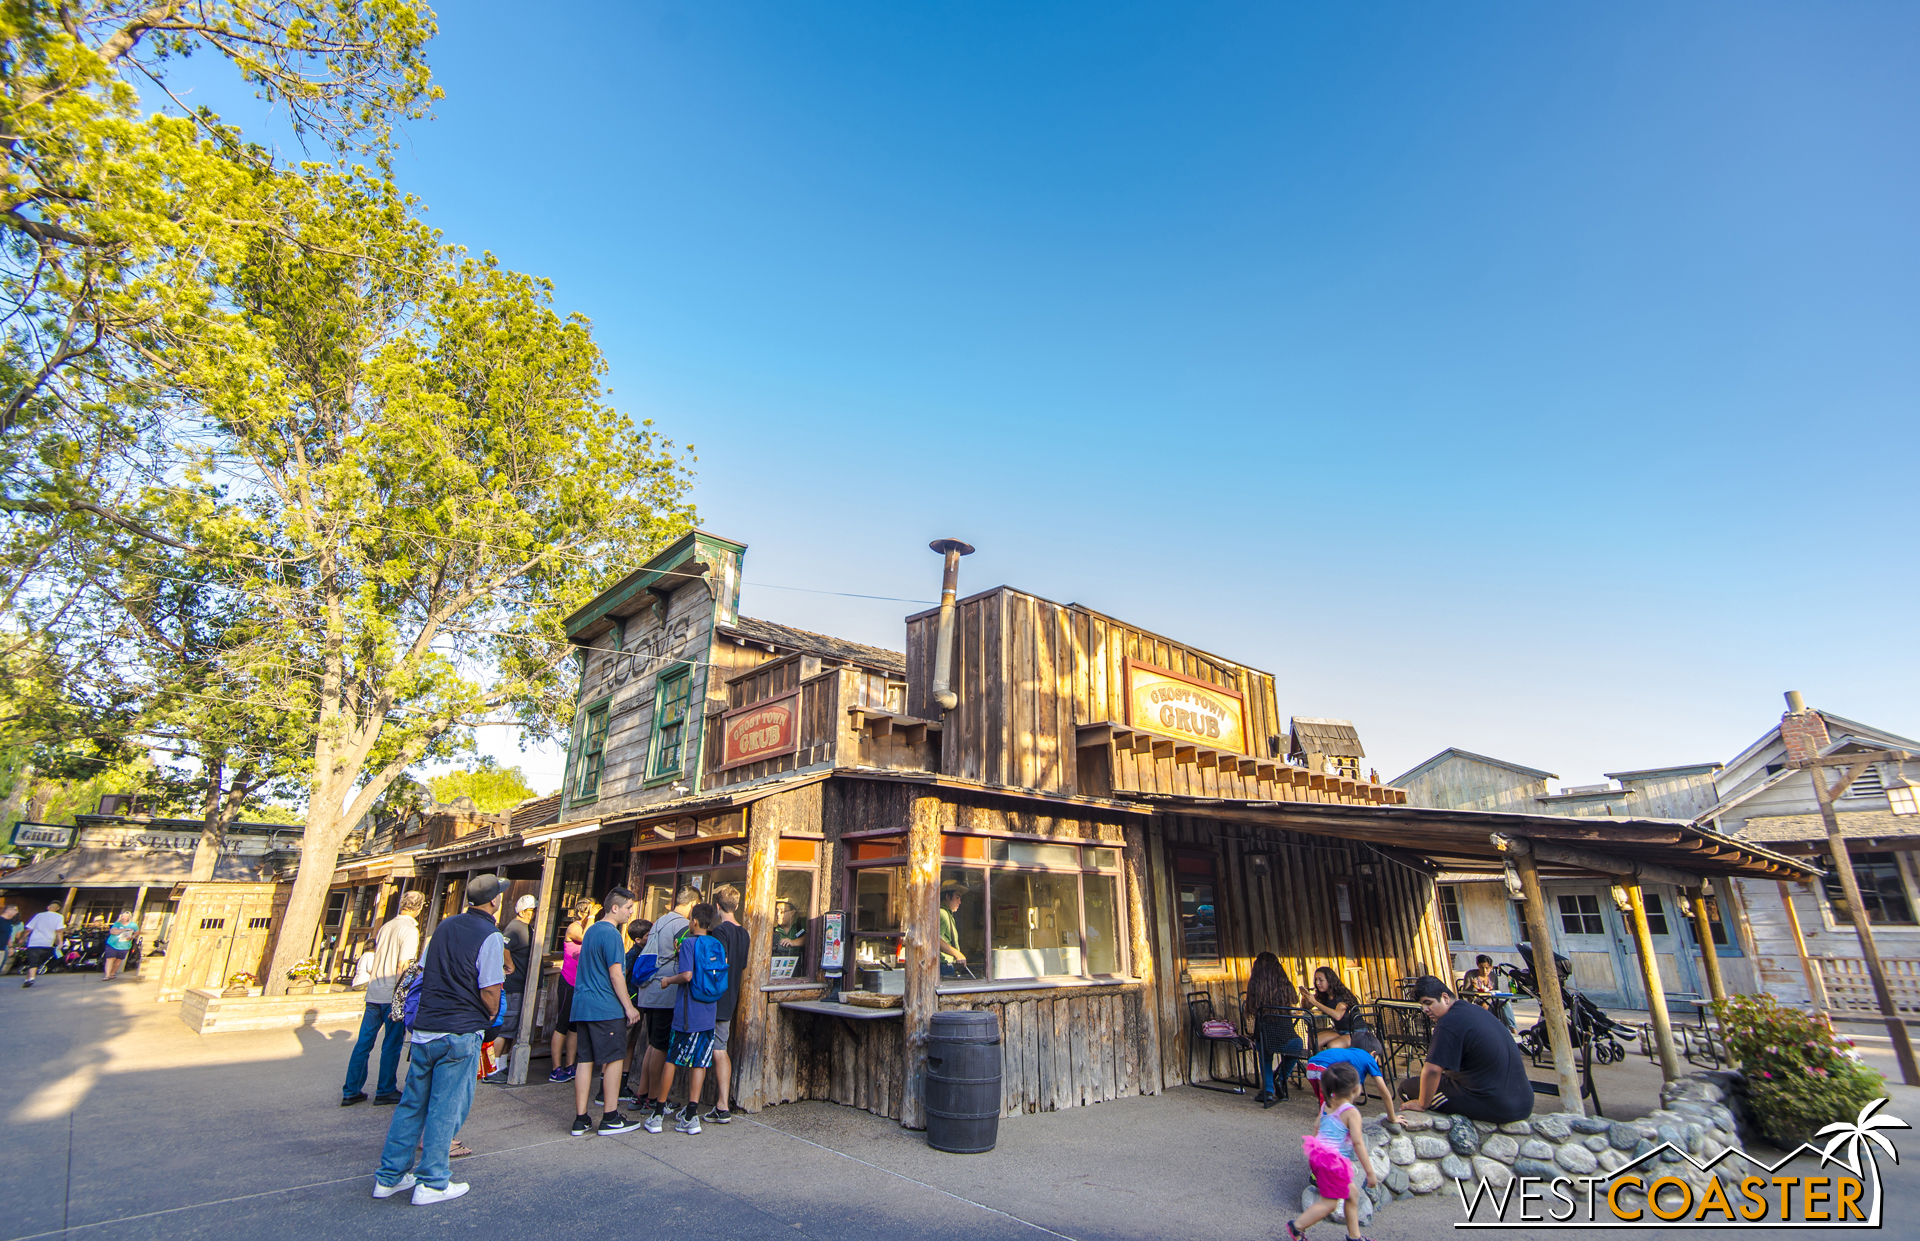 Grab some quick serve food at the Ghost Town Grub.